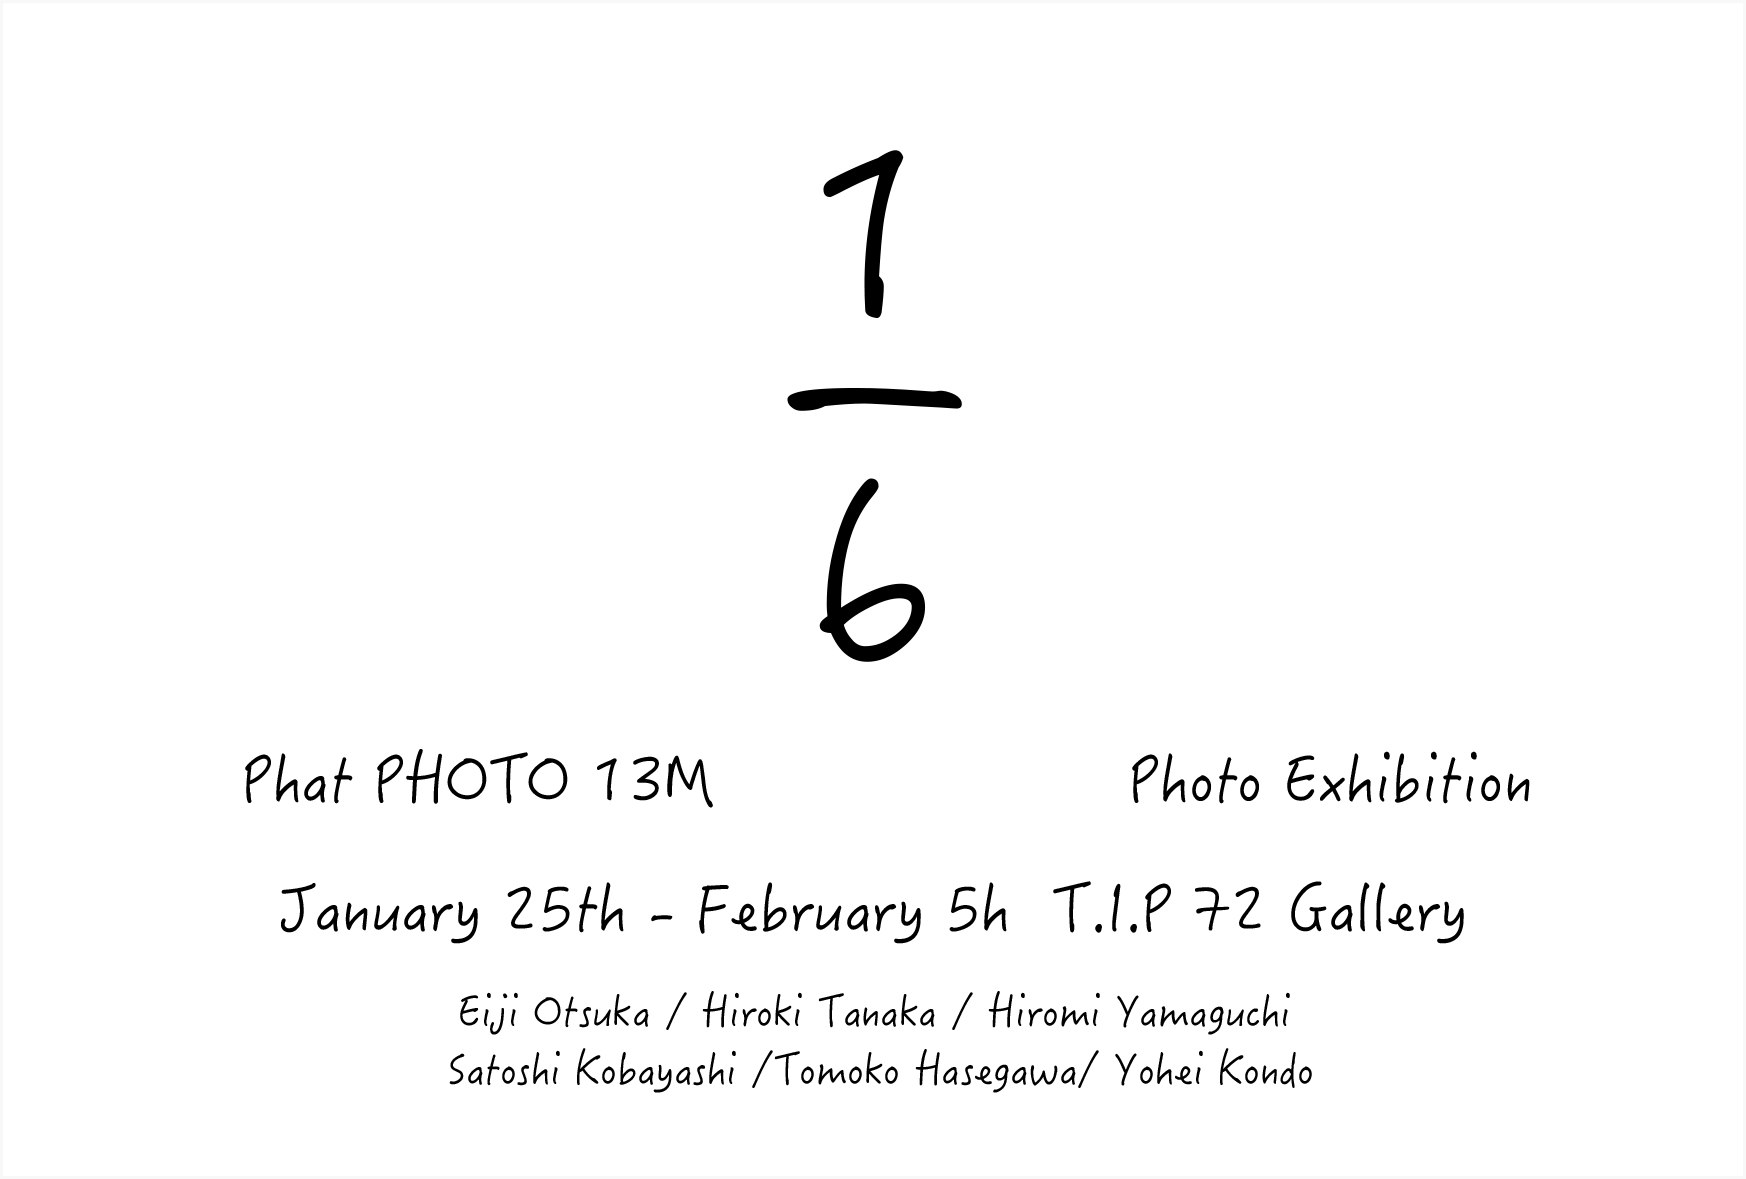 1/6 PHaT PHOTO 13M Photo Exhibition